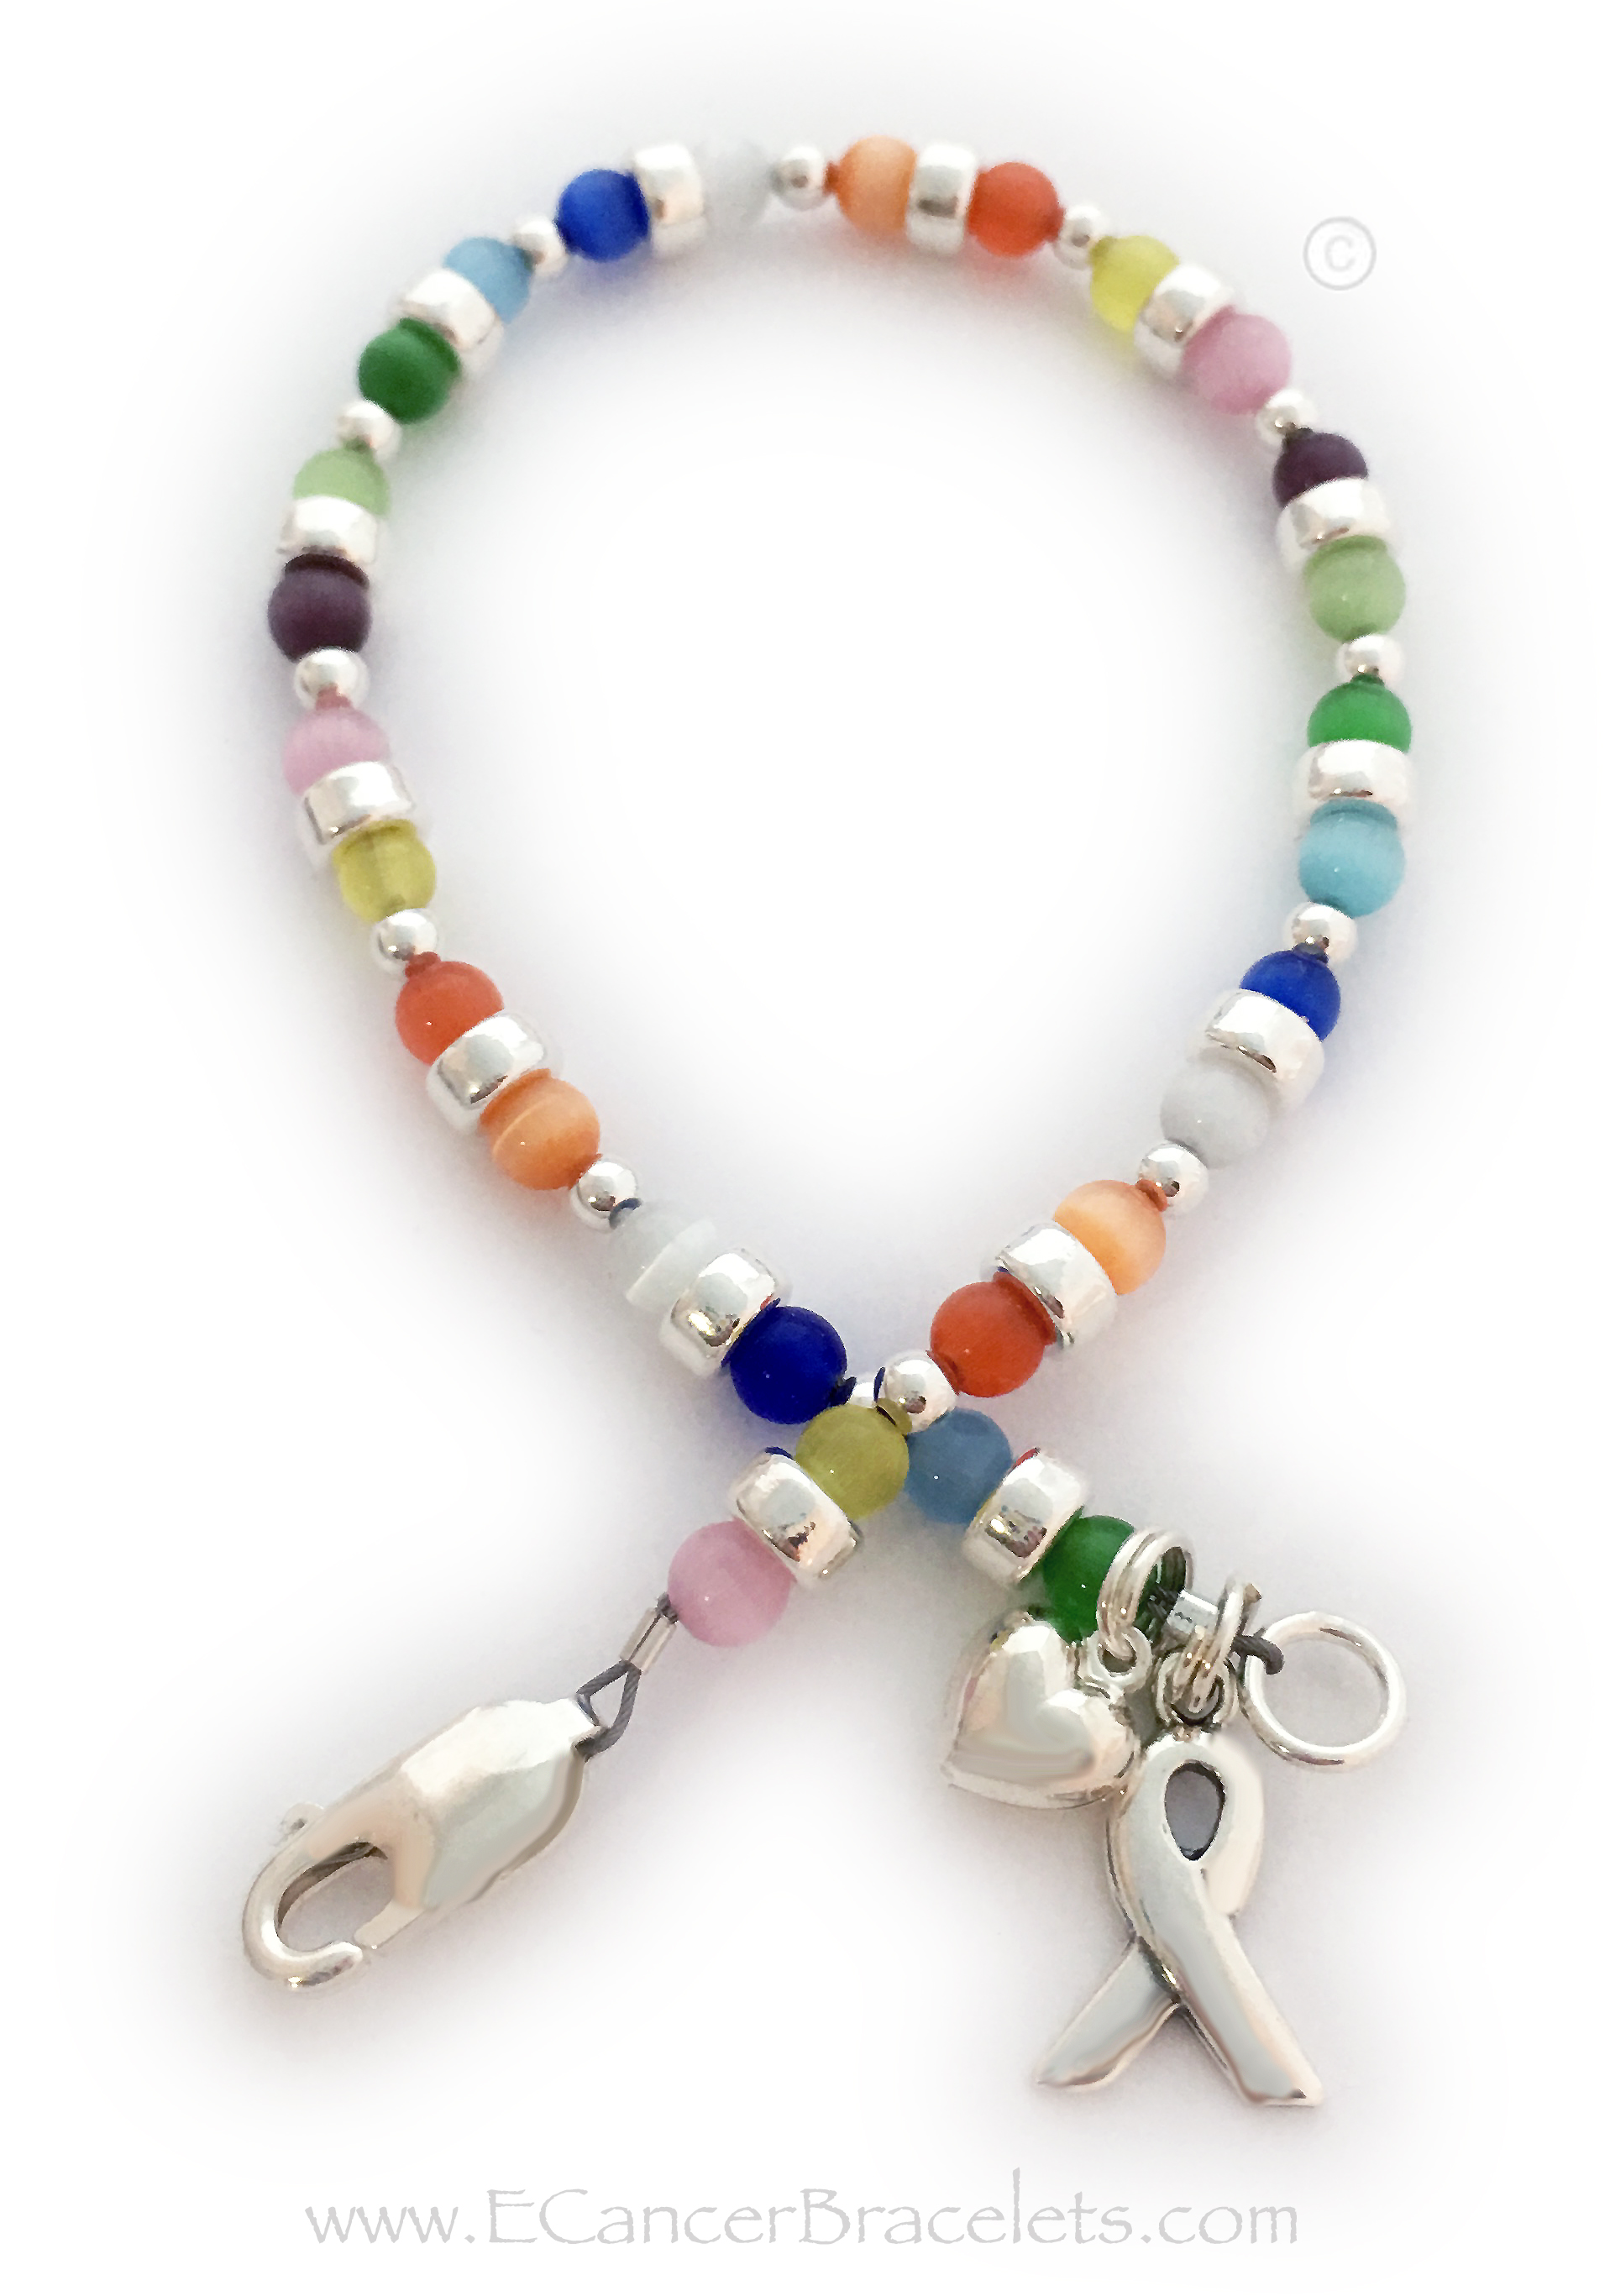 This all cancer colors bracelett is shown with COLORFUL Cat's Eye Cancer colors and it includes the ribbon charm. They picked a sterling silver Lobster Claw Clasp. The Heart charm shown is optional.